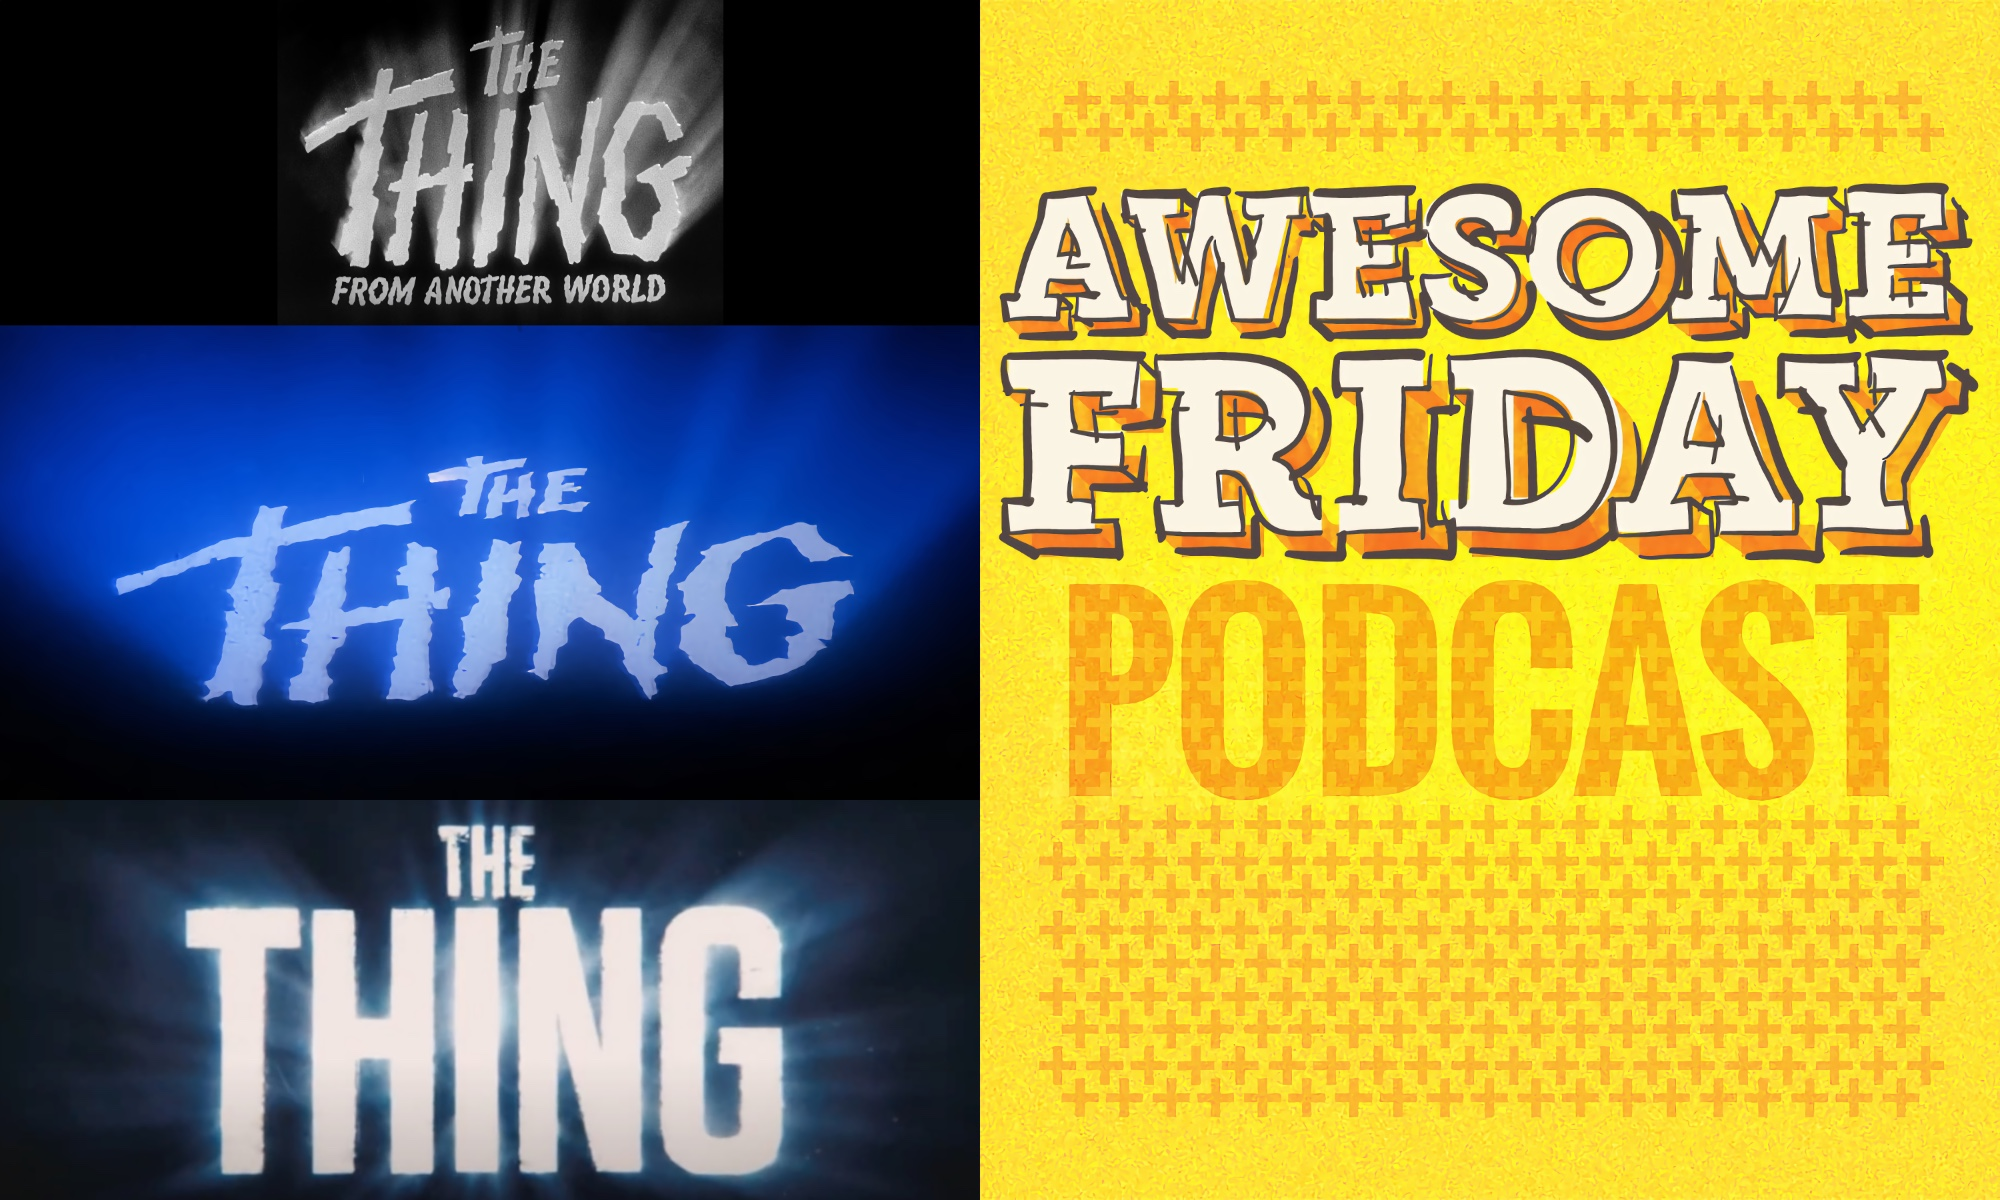 Awesome Friday Podcast The Thing, The Thing, The Thing